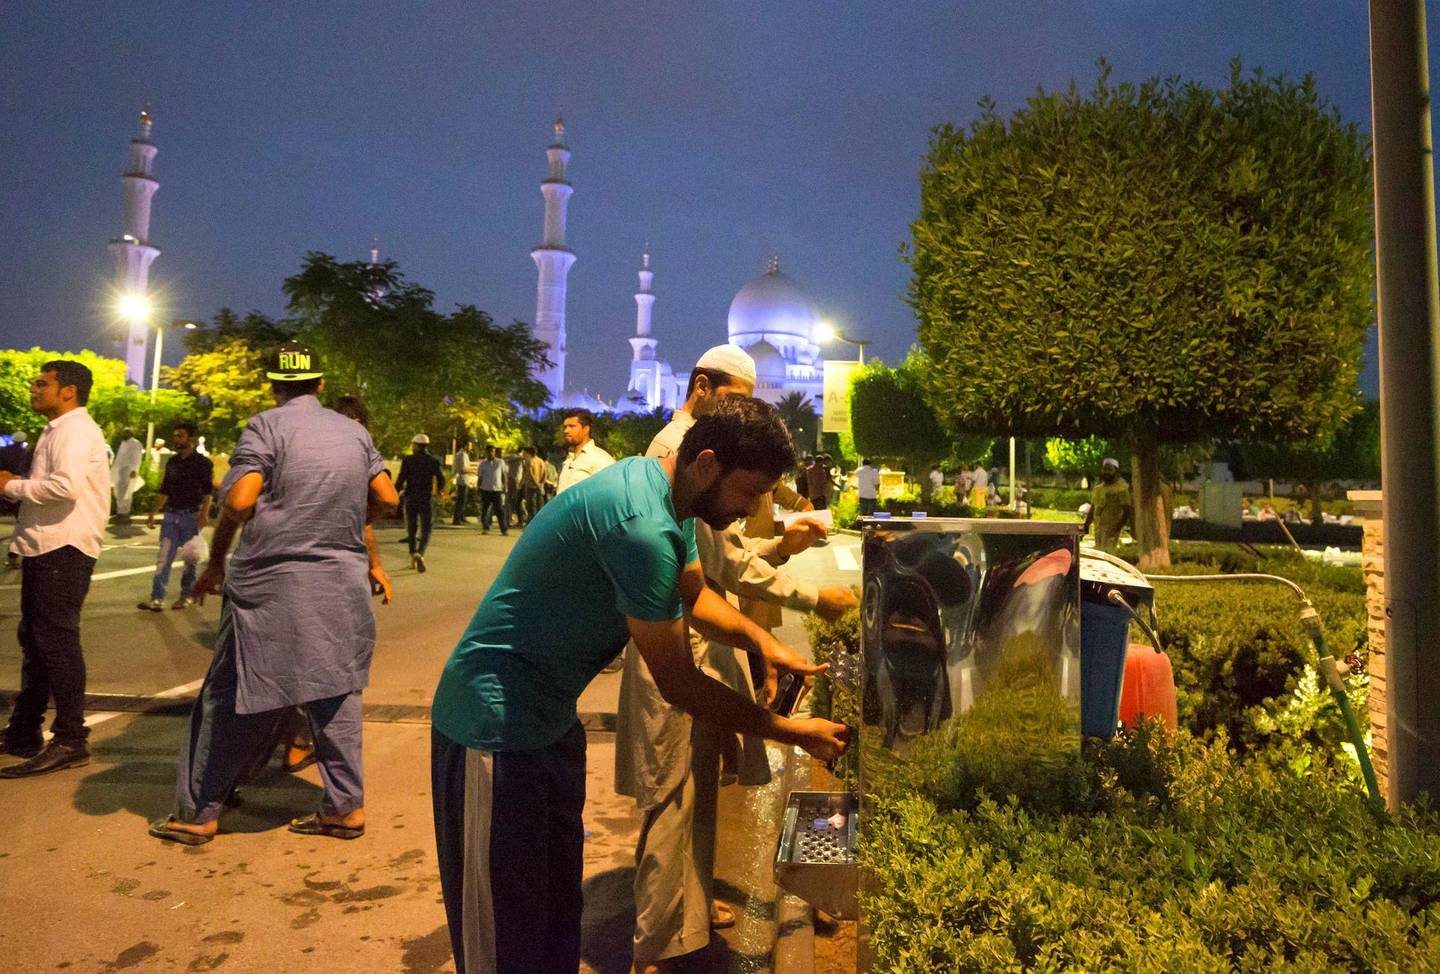 ABU DHABI, UNITED ARAB EMIRATES, 17 May 2018 -People washing their hands after breaking their fast at Sheikh Zayed Grand Mosque, Abu Dhabi. Leslie Pableo for The National